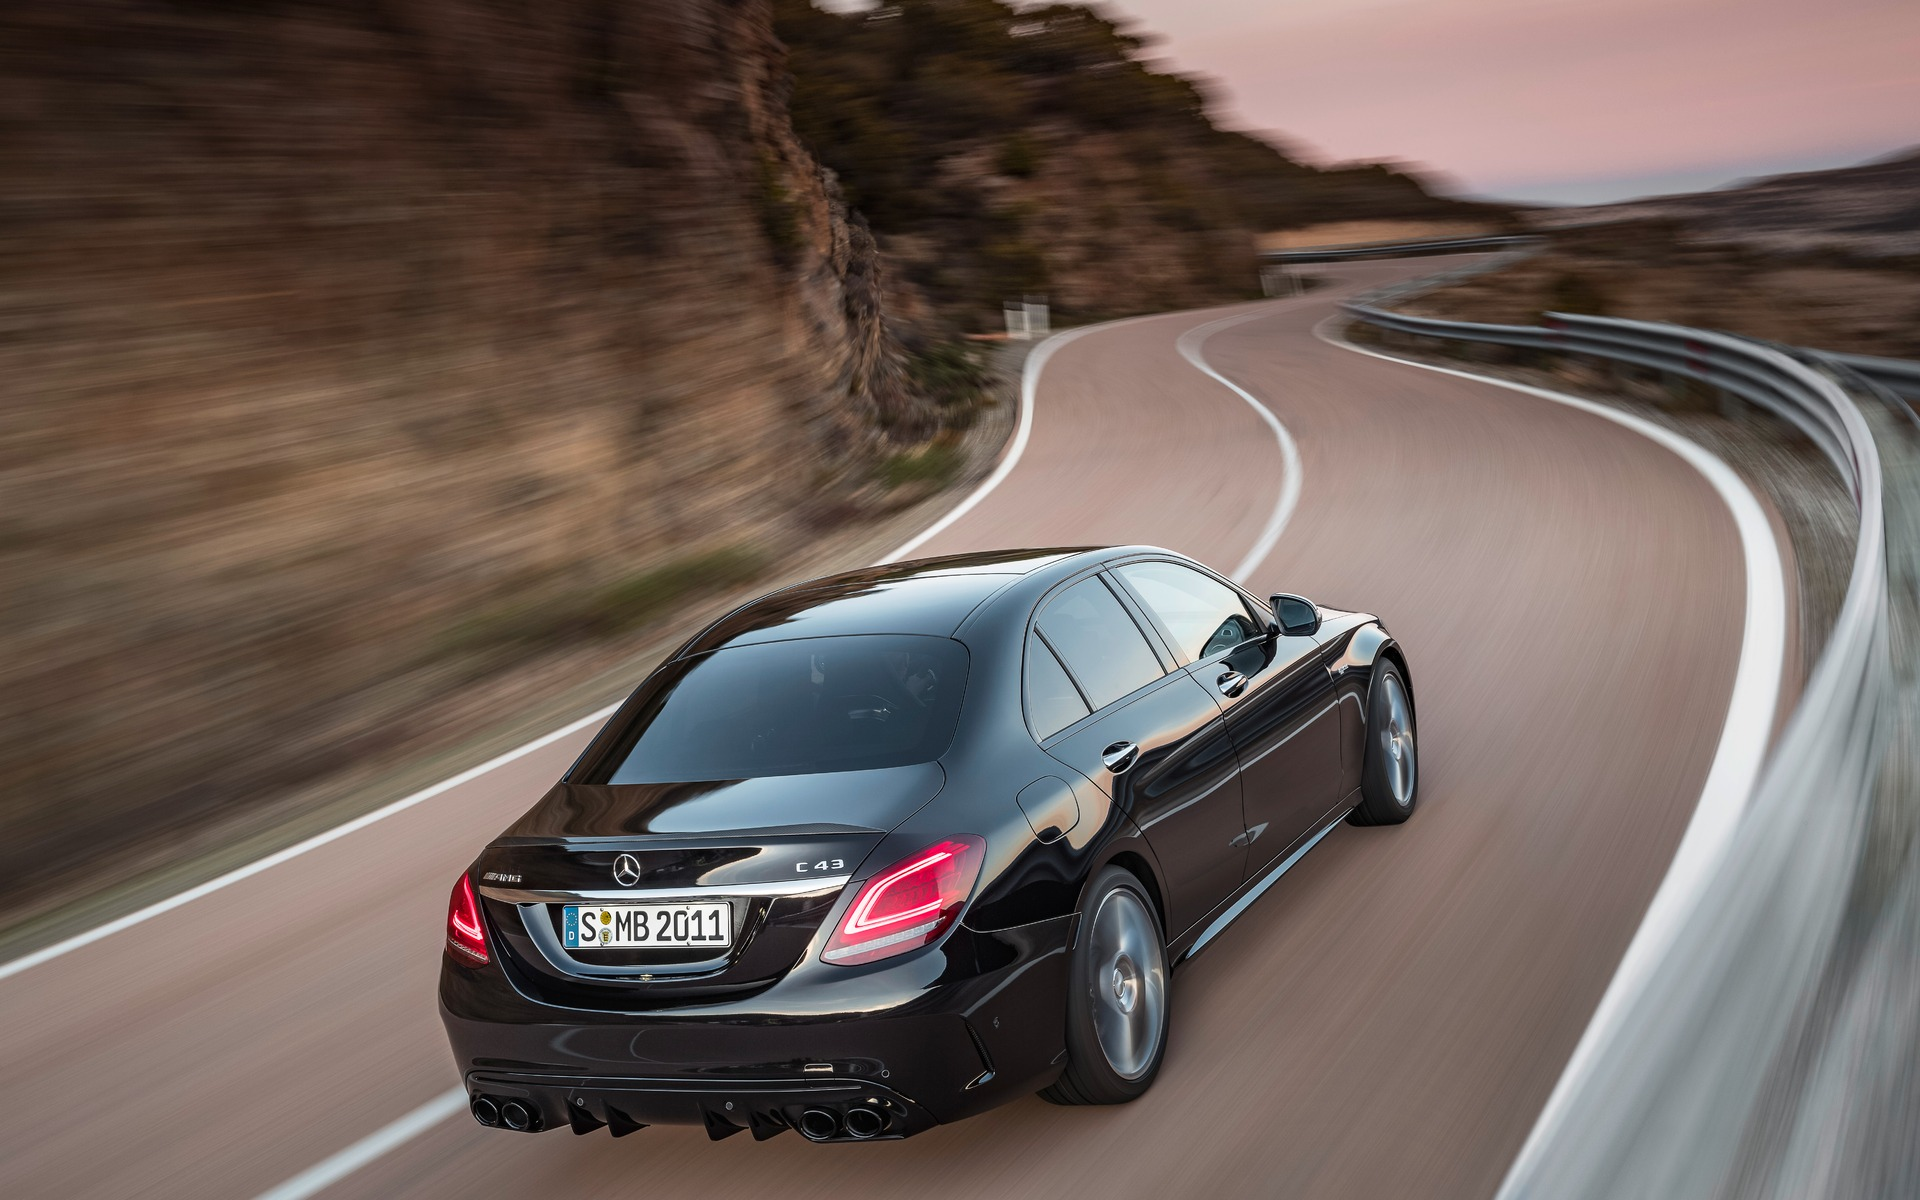 An Update For The 2019 Mercedes Amg C 43 3 26